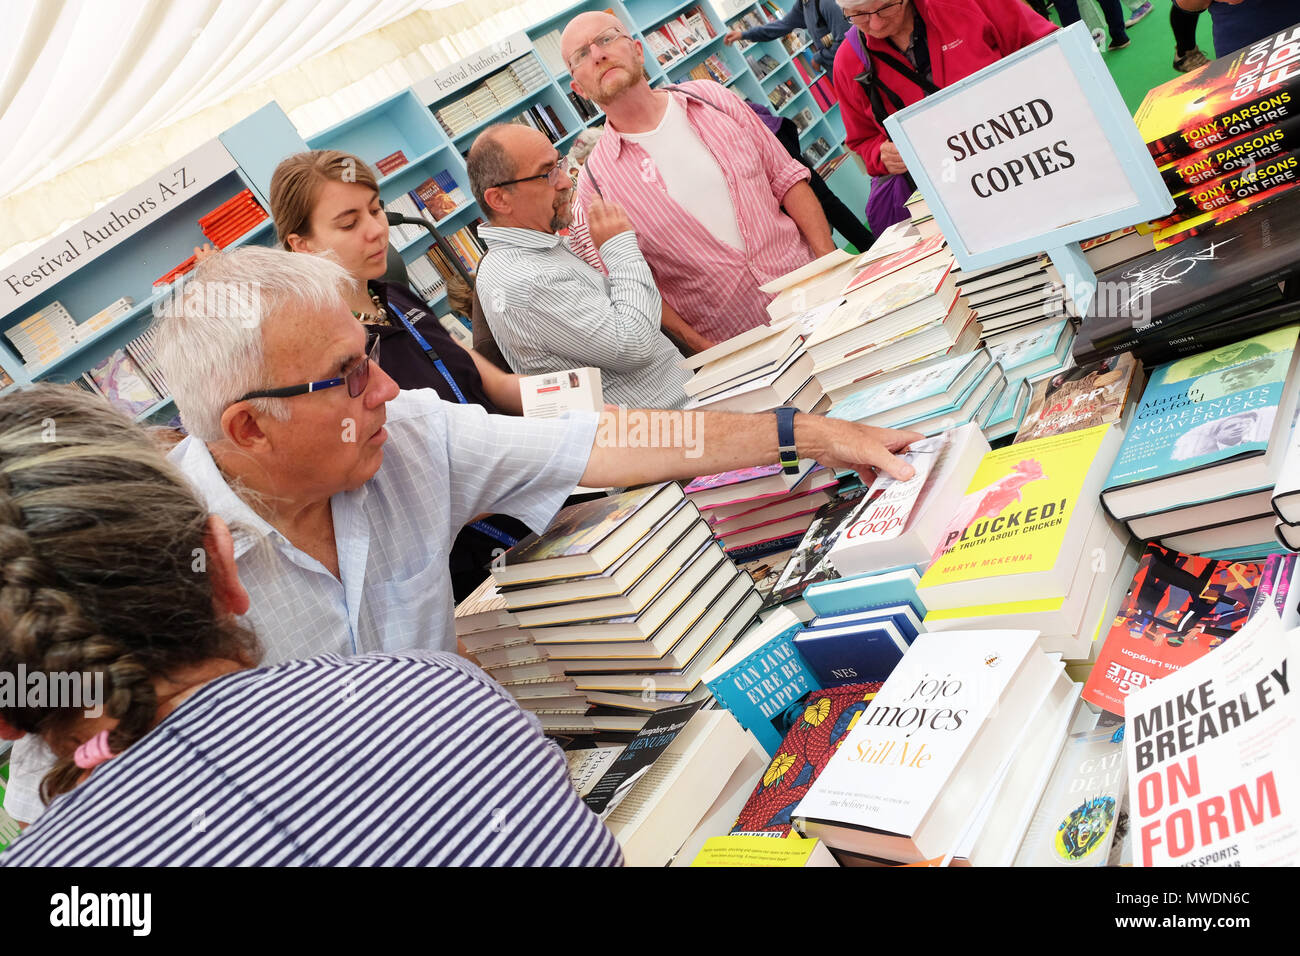 Hay Festival, Hay on Wye, UK - Friday 1st June 2018 - Visitors to the Hay Festival bookshop browse a selection of signed copies of books by auhors appearing at the Festival - Photo Steven May / Alamy Live News - Stock Image